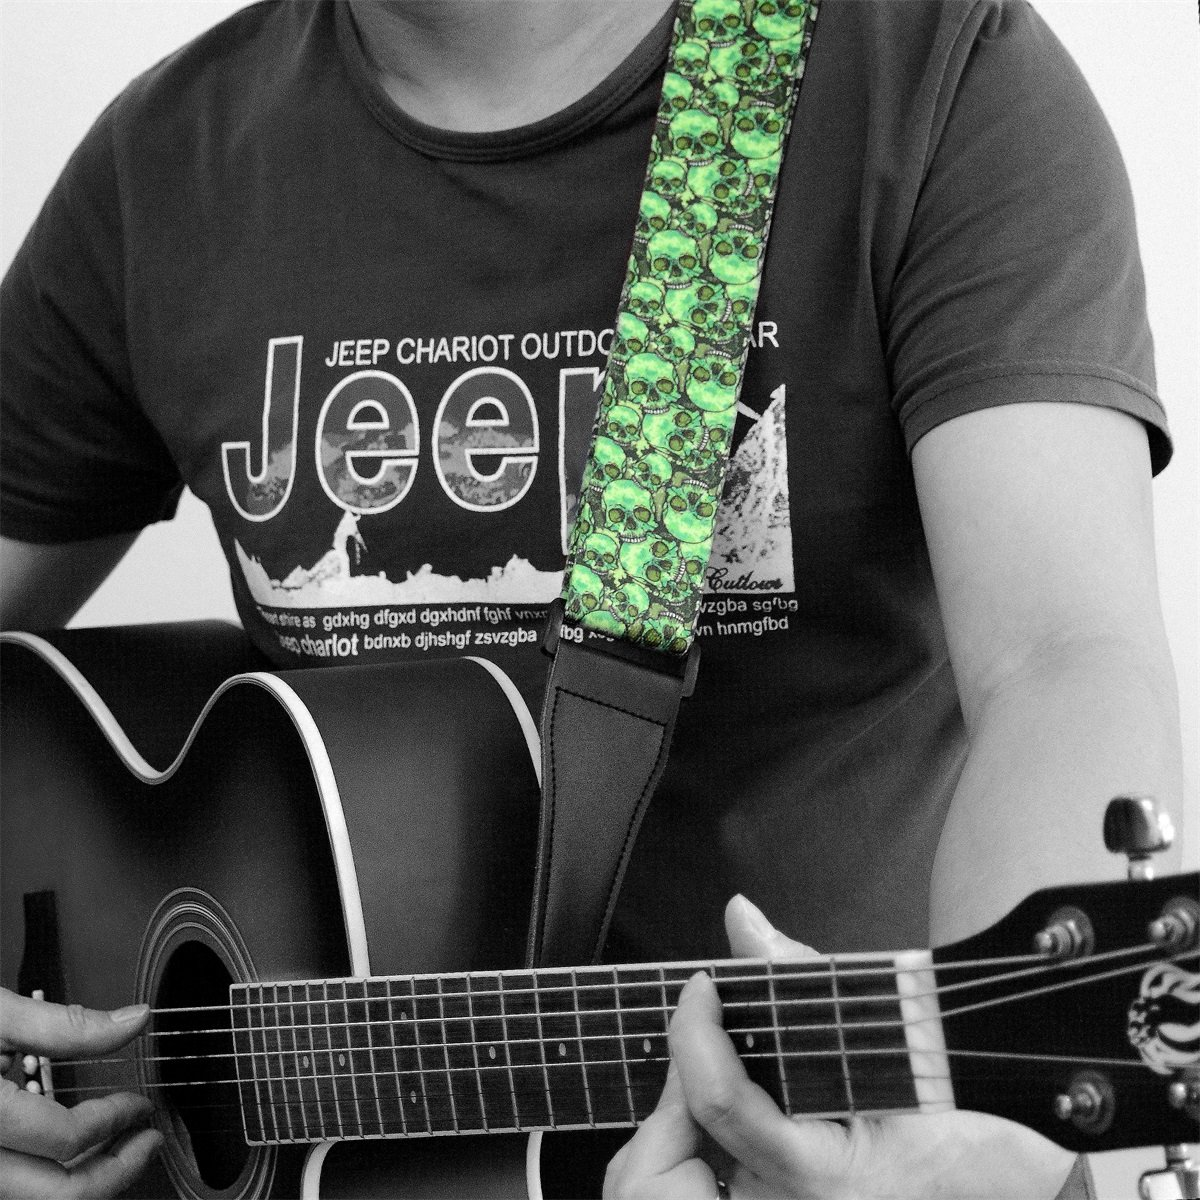 Includes 3 Pick Holders Cotton Strap Basics Adjustable Guitar Strap For Electric//Acoustic Guitar//Bass Blue